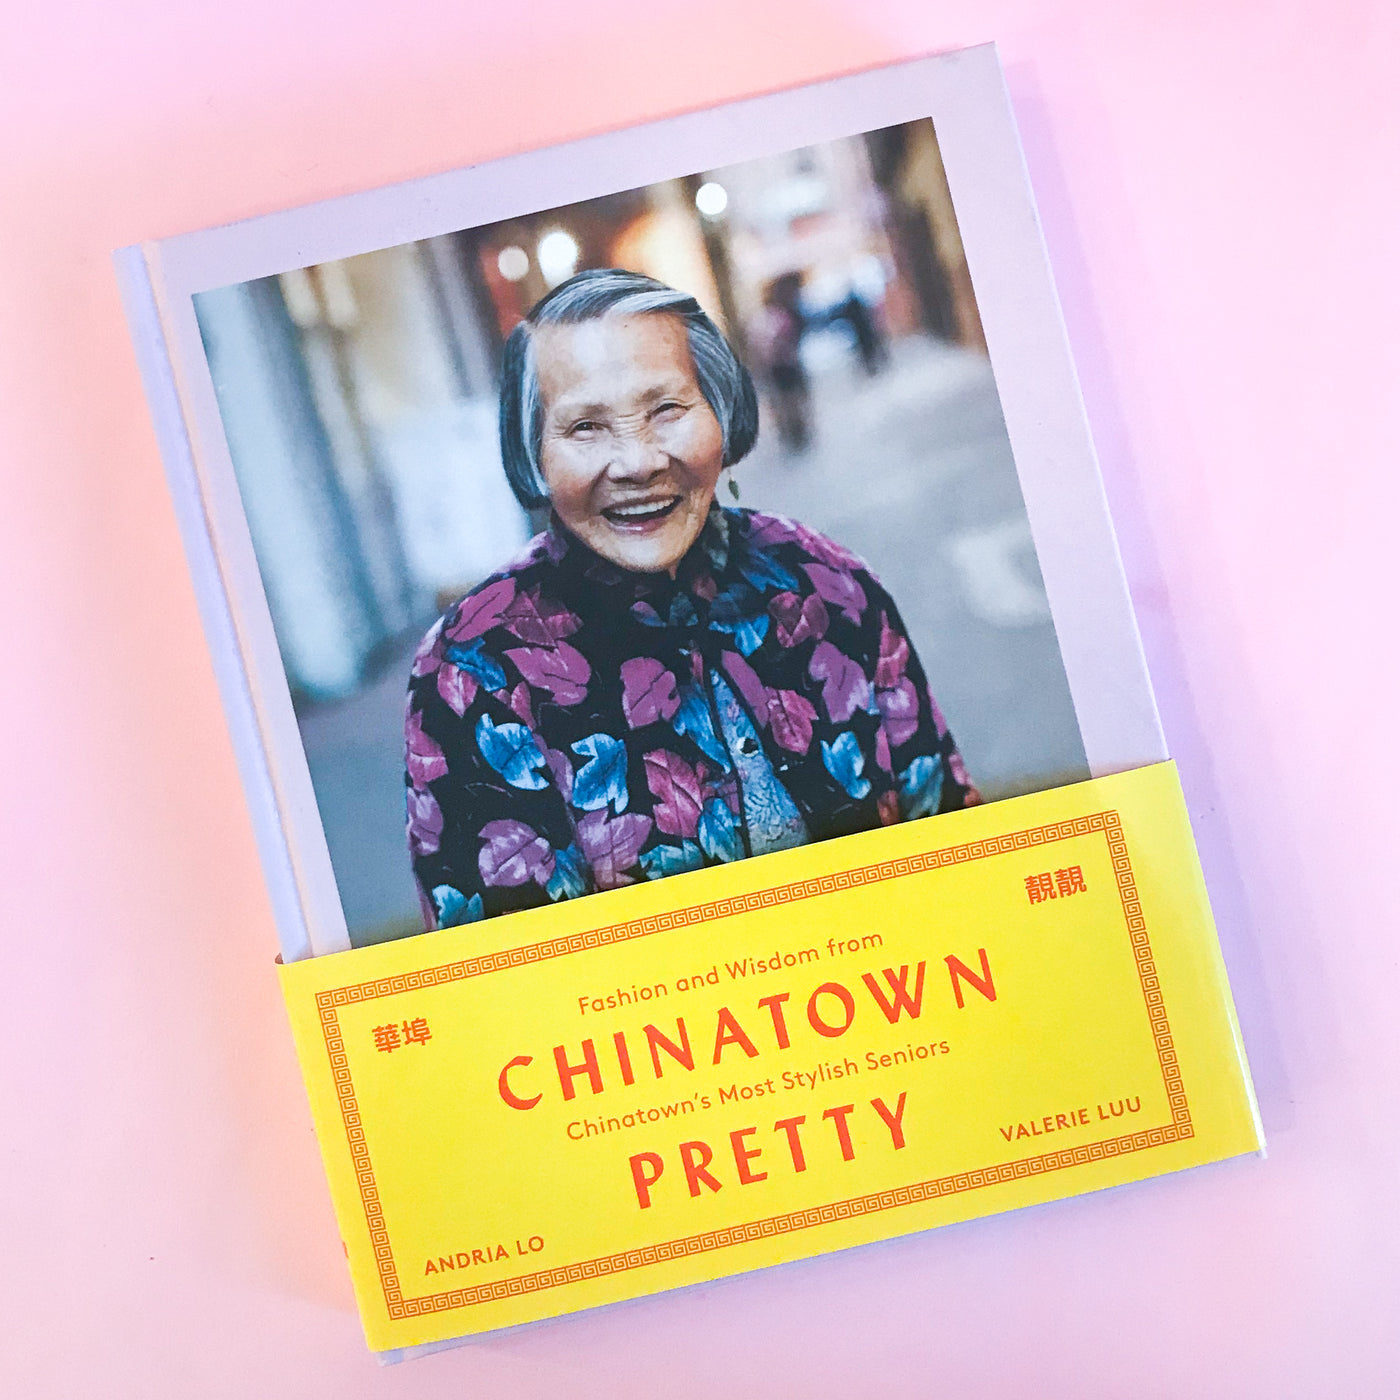 Chinatown Pretty by Andria Lo and Valerie Luu